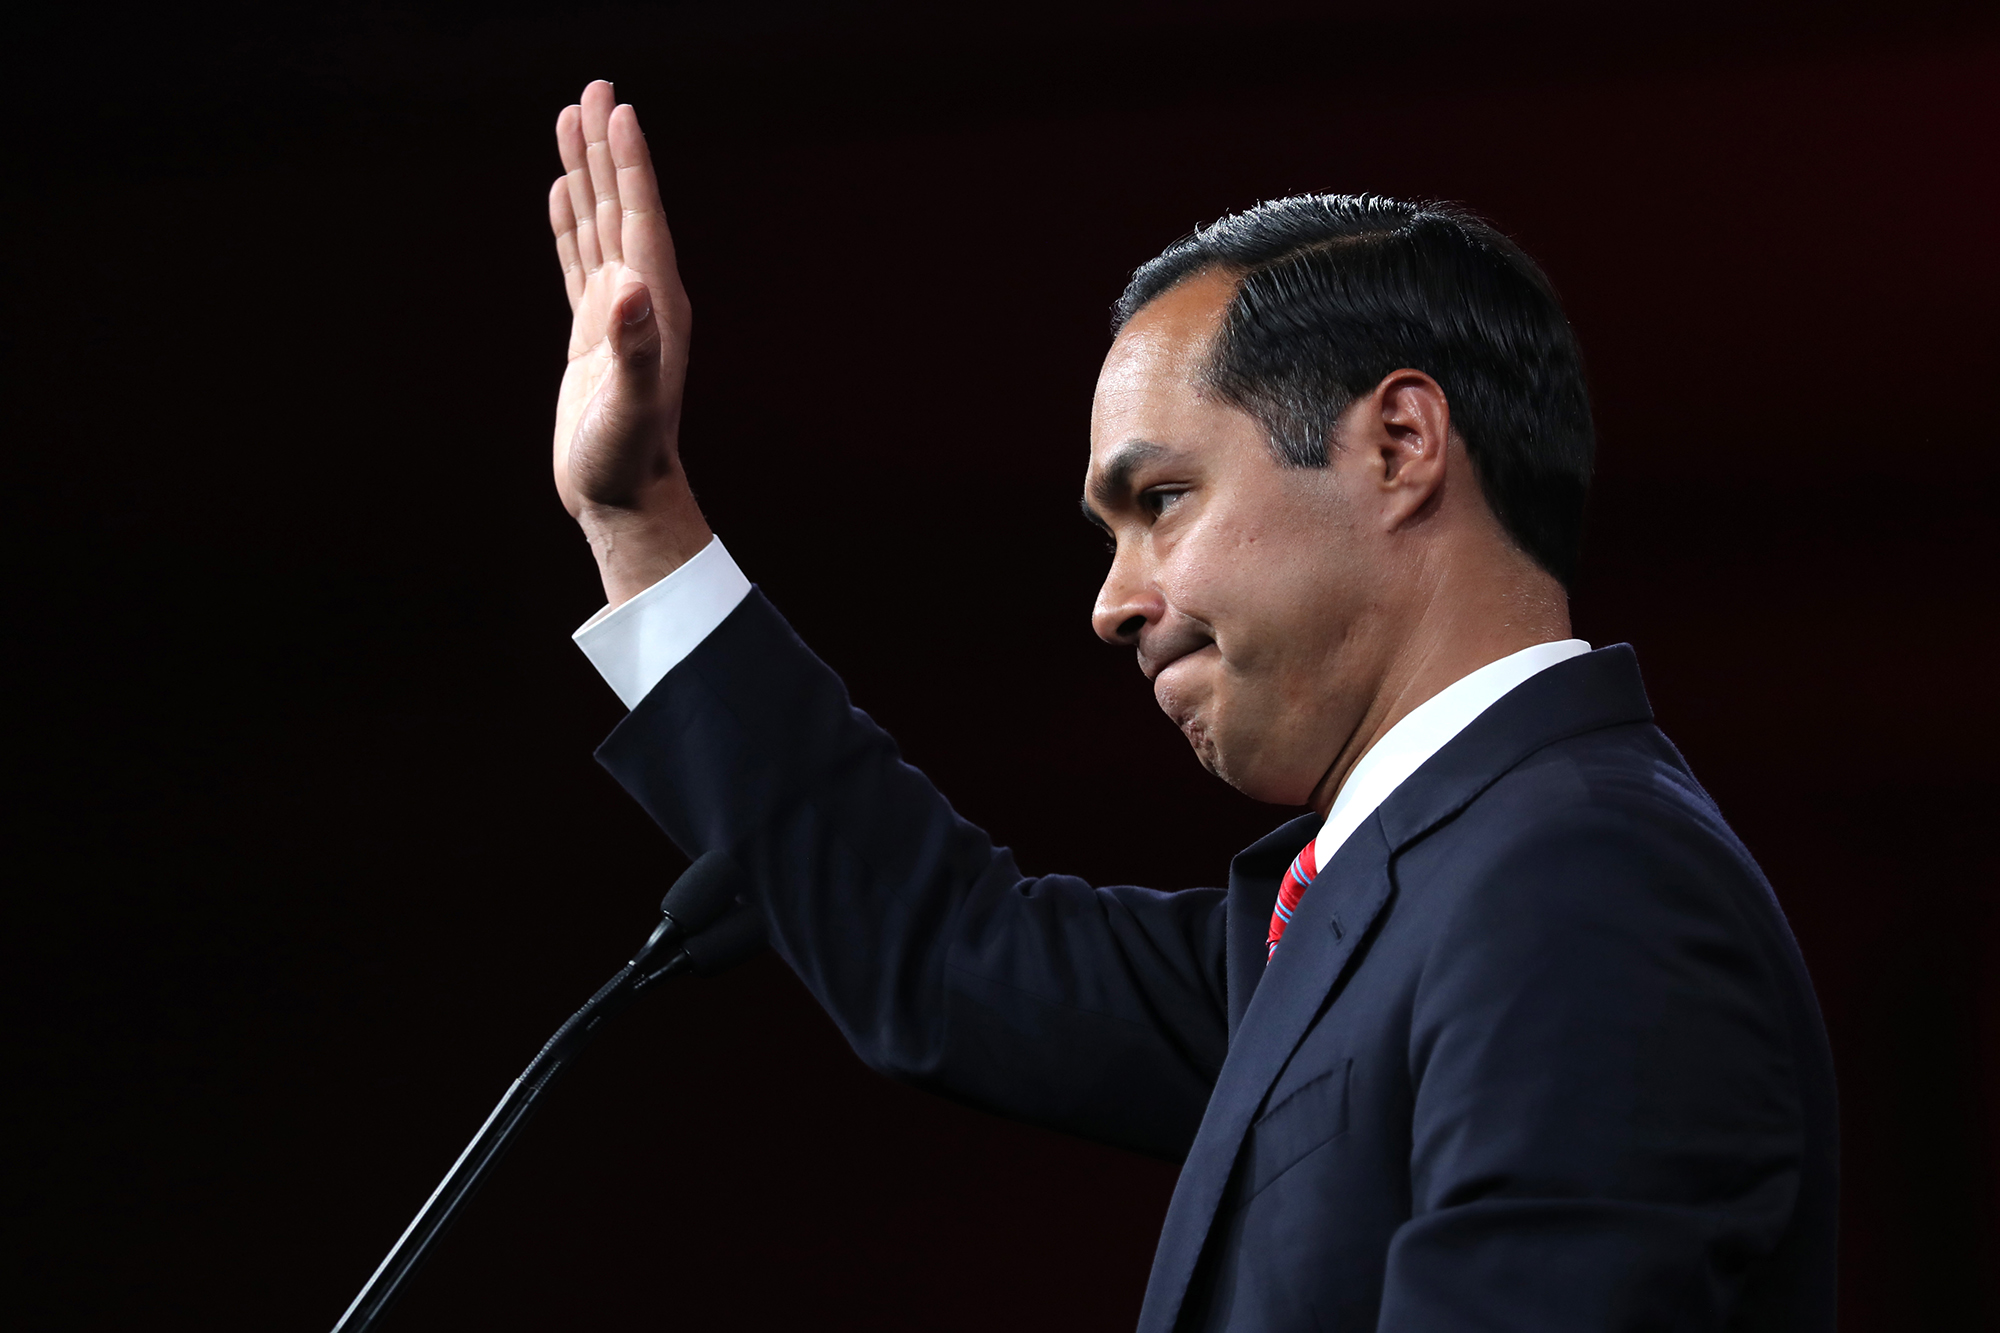 Former Housing and Urban Development secretary Julian Castro speaks during the Democratic Presidential Committee summer meeting on August 23, 2019 in San Francisco.